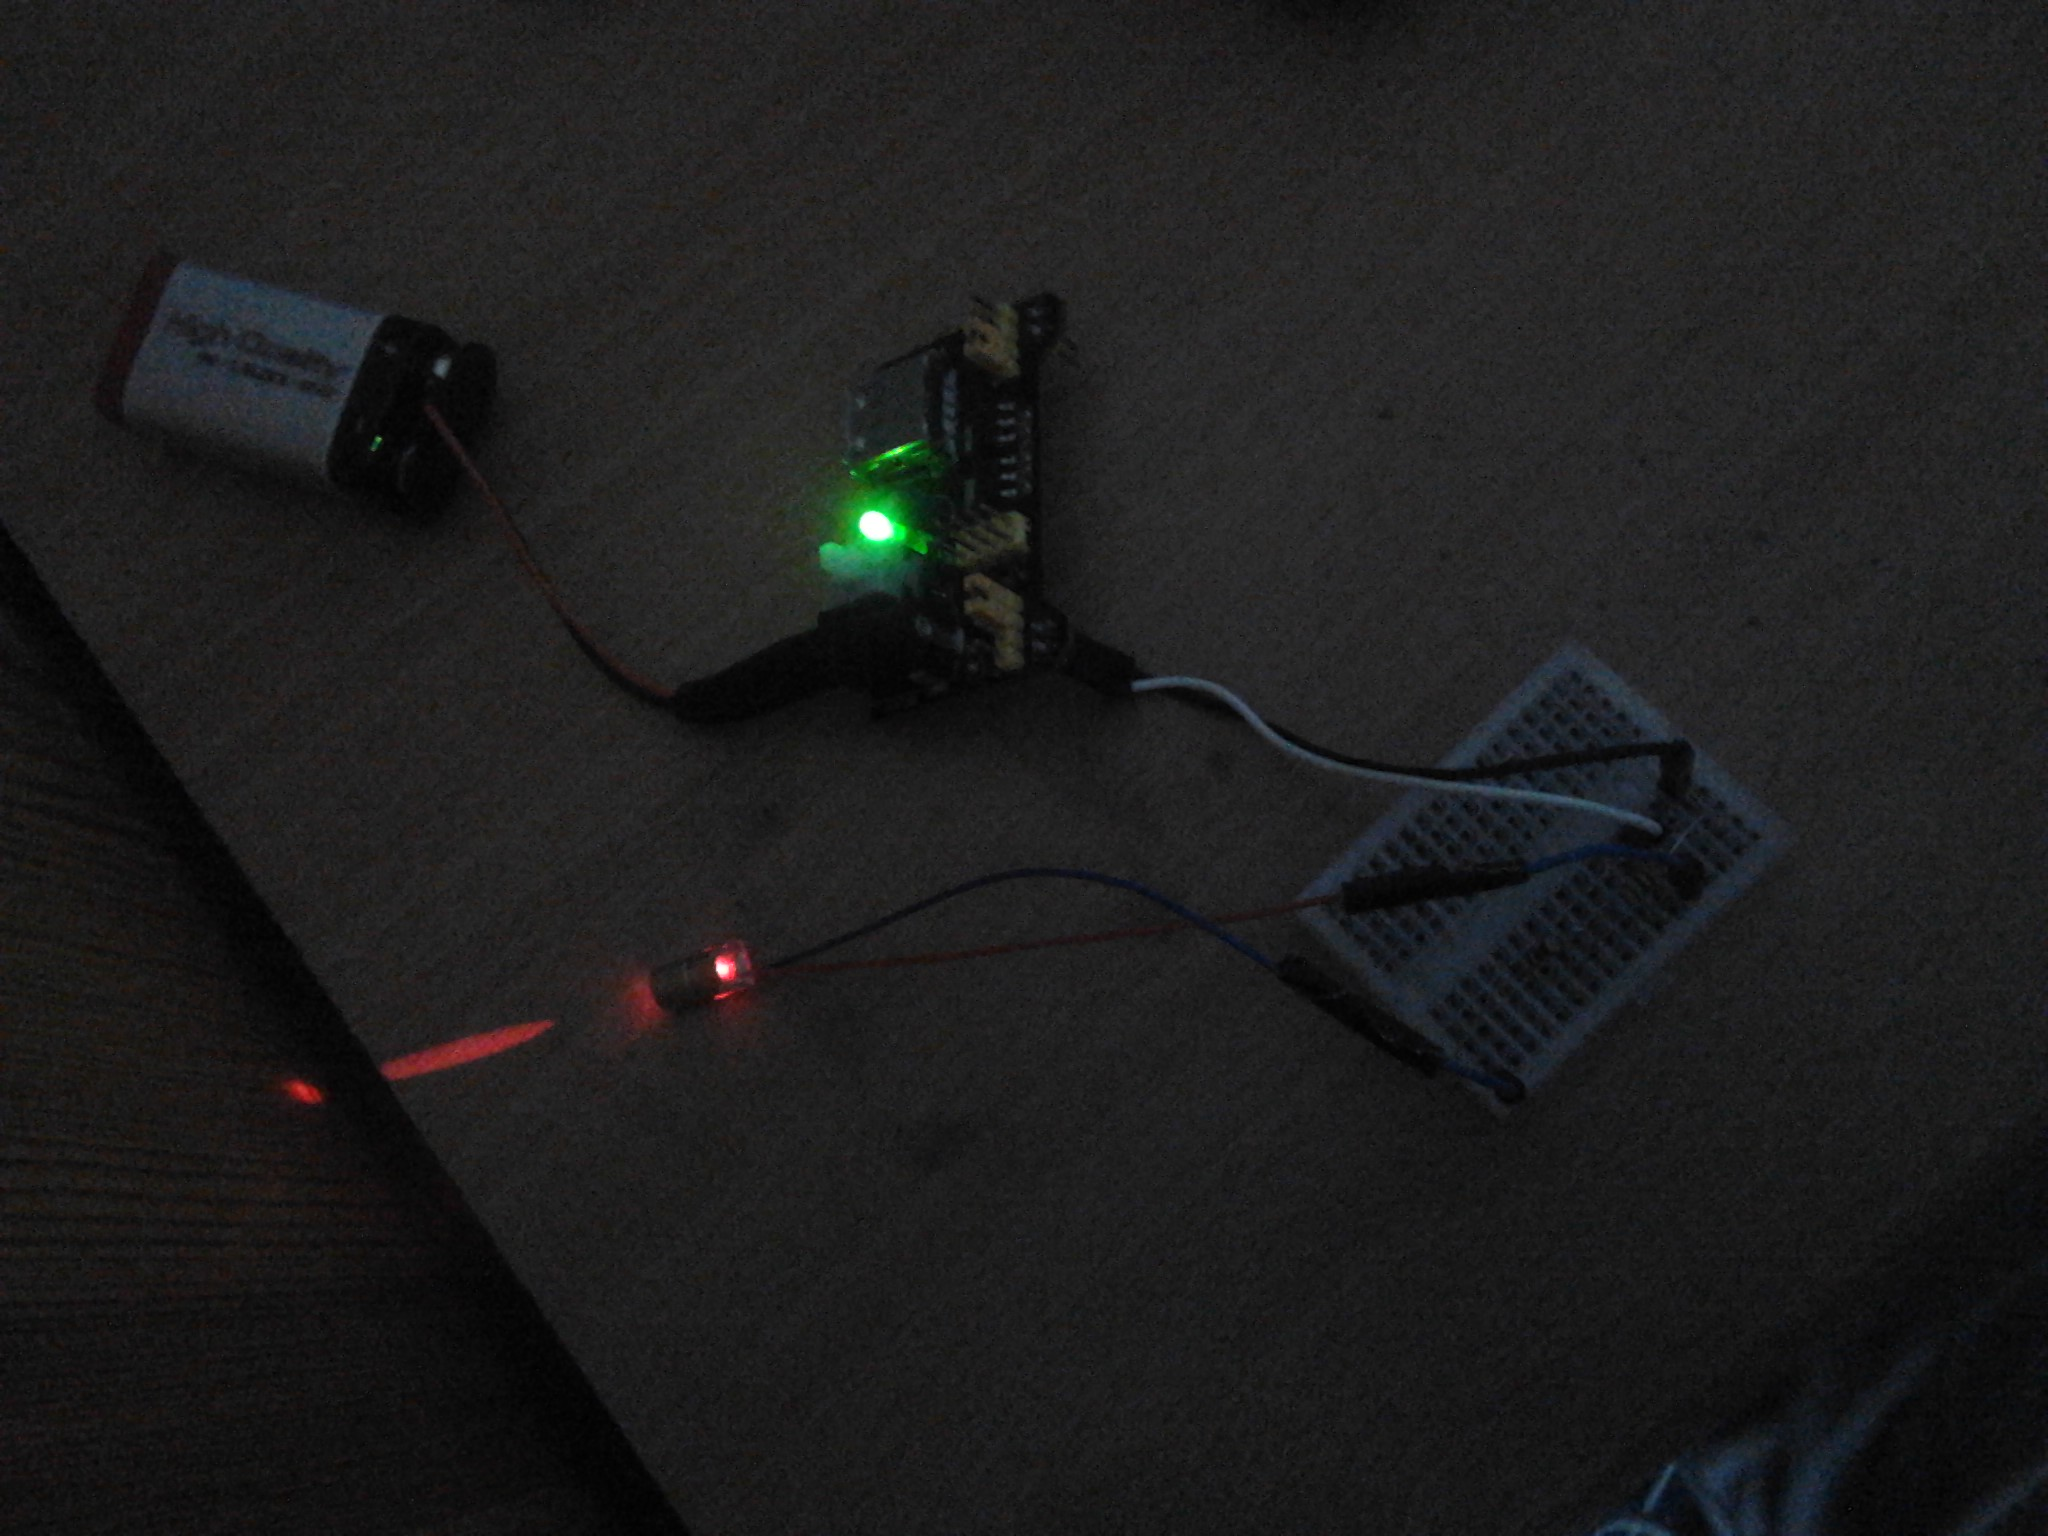 Directly Connect 33v 5mw Laser Diode To Pi Zero Gpio Raspberry Wiring Of The These Are Clearly Identified In Each So If Not Doing Danger Only Option Is Use A L9110s Motor Controller Provide More Current Than Pins Able Deliver Like I